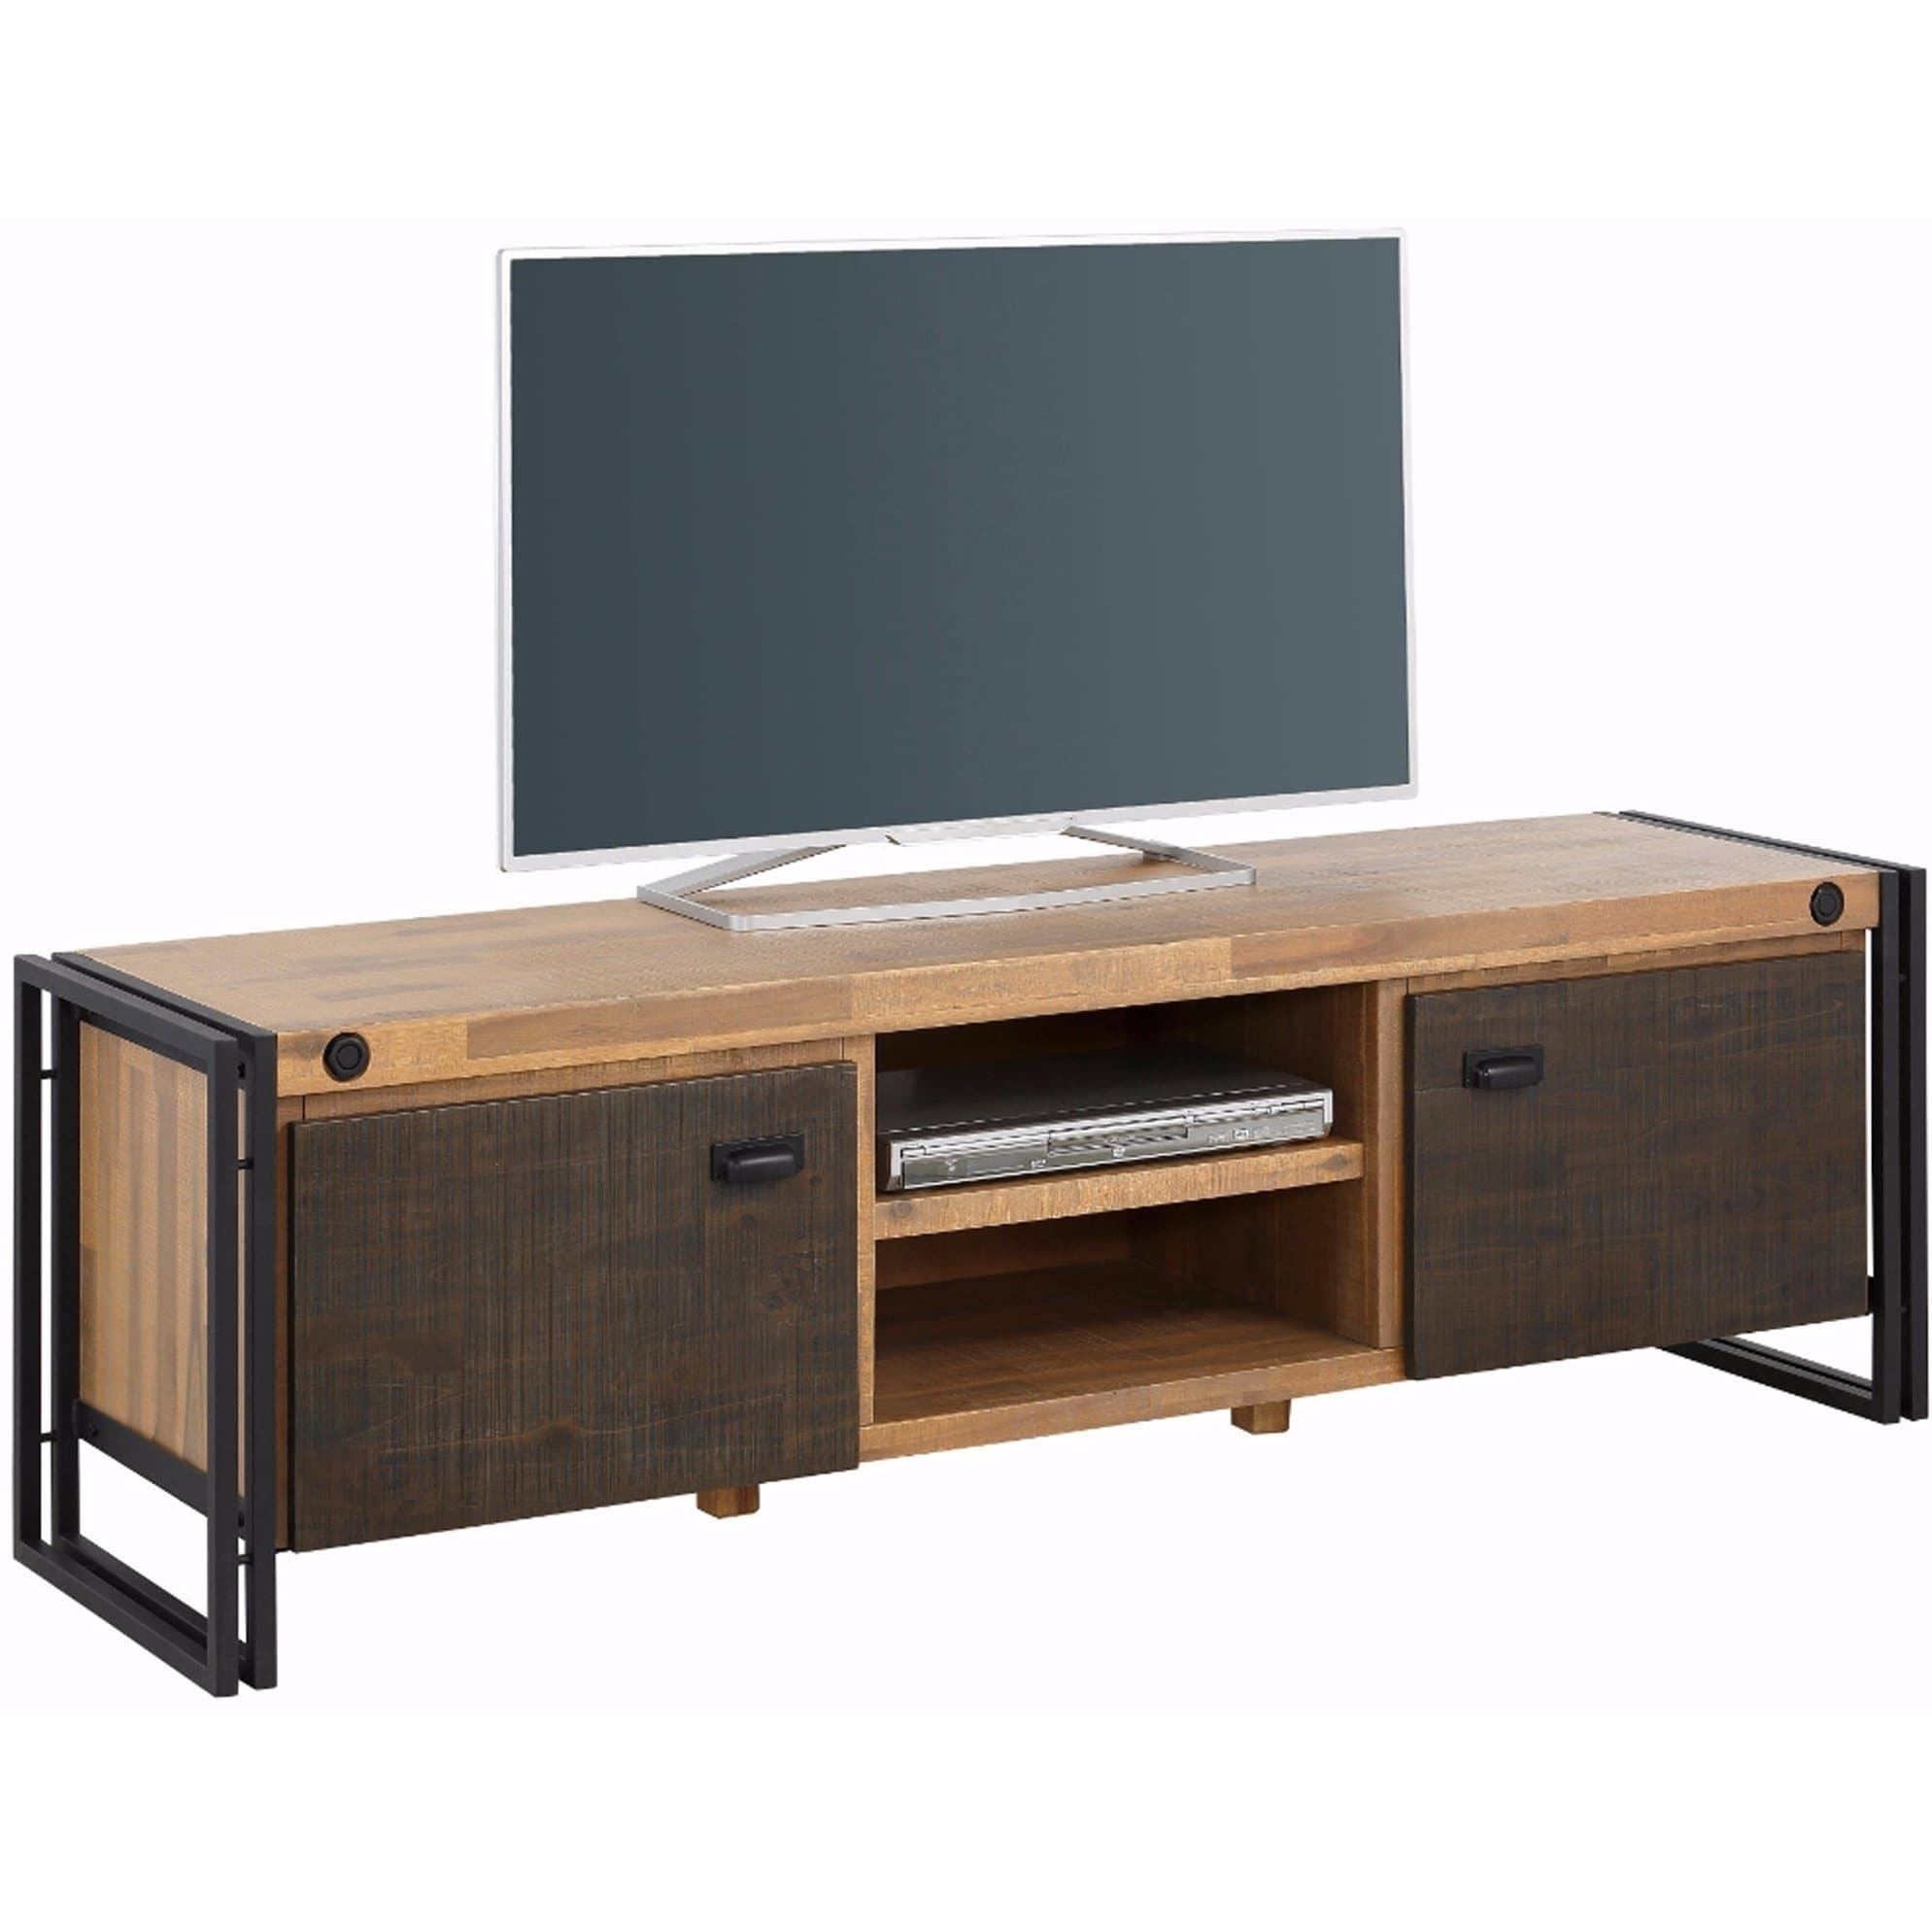 Tv Board Lowboard City Scandinavian Living Katashi Acacia Wood And Metal 2 Door Tv Lowboard Entertainment Center